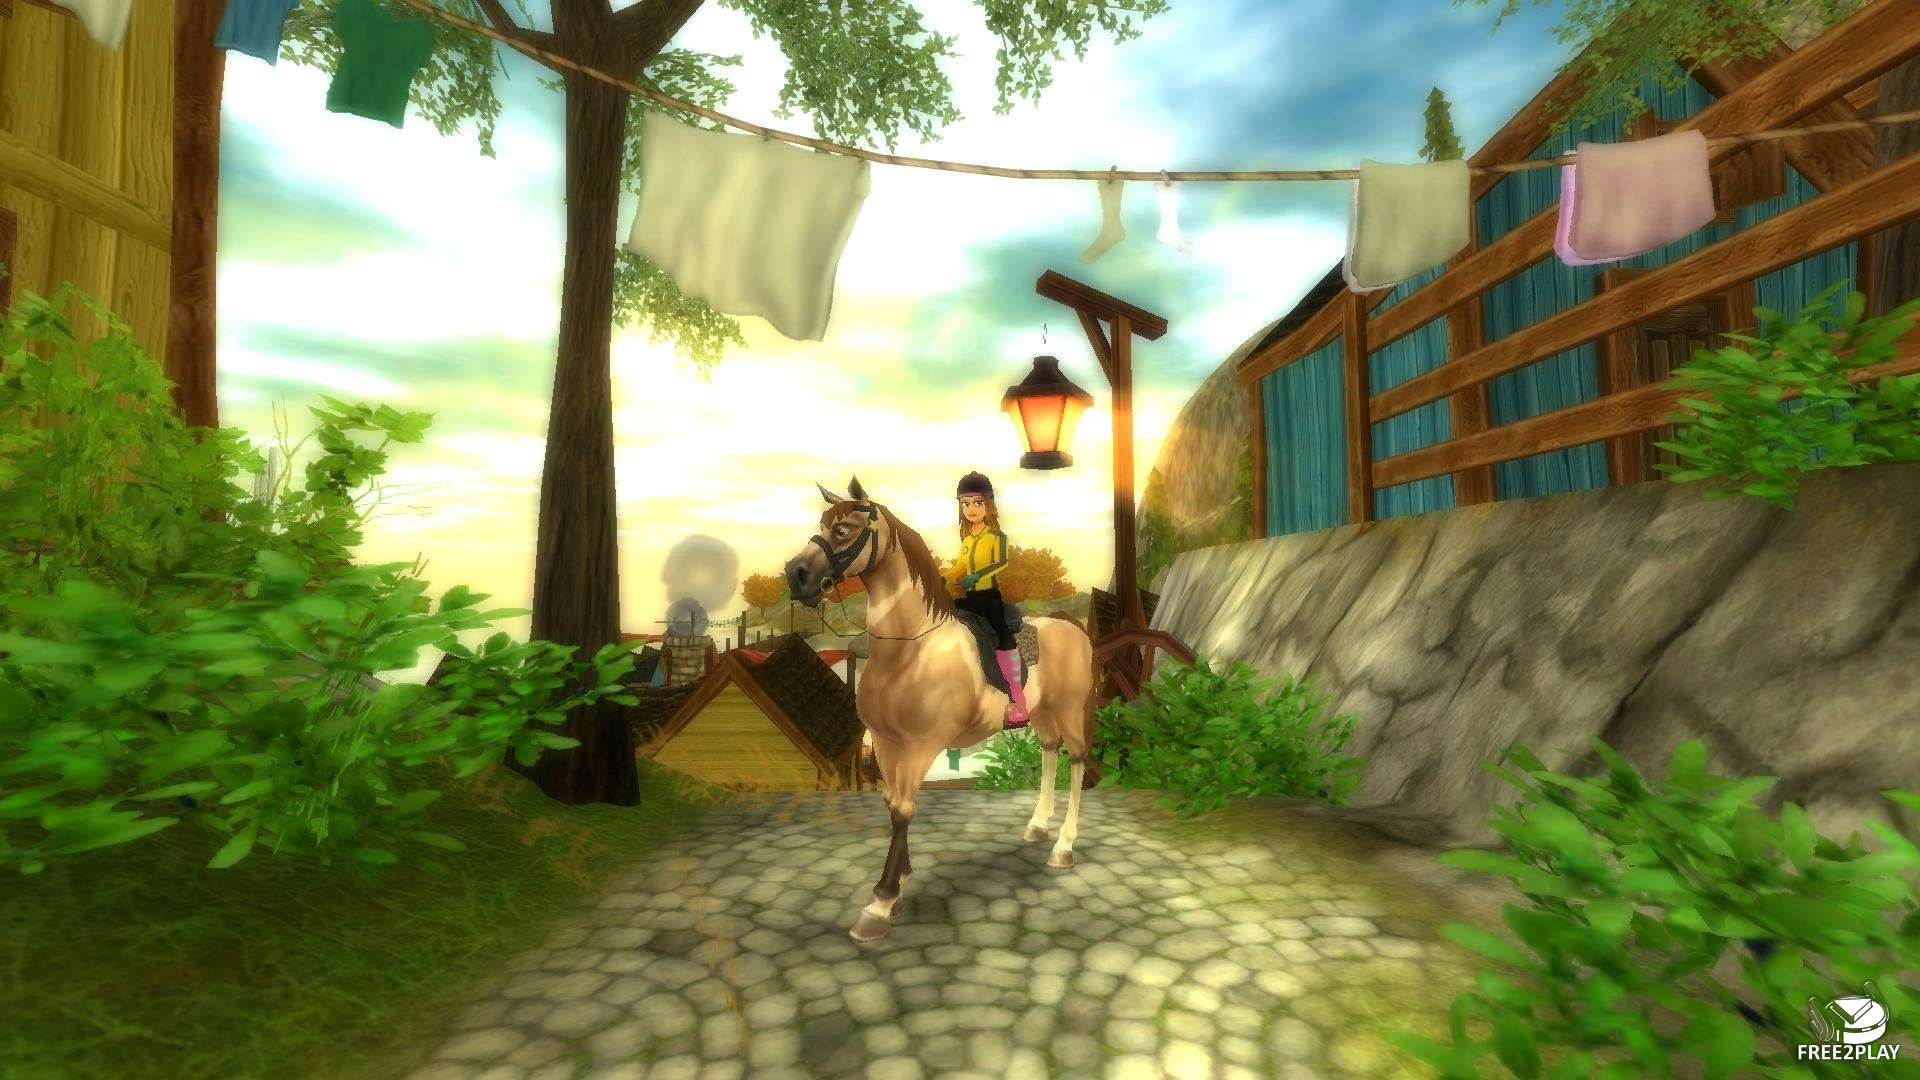 3d Server Wallpaper Star Stable Free2play Star Stable F2p Game Star Stable